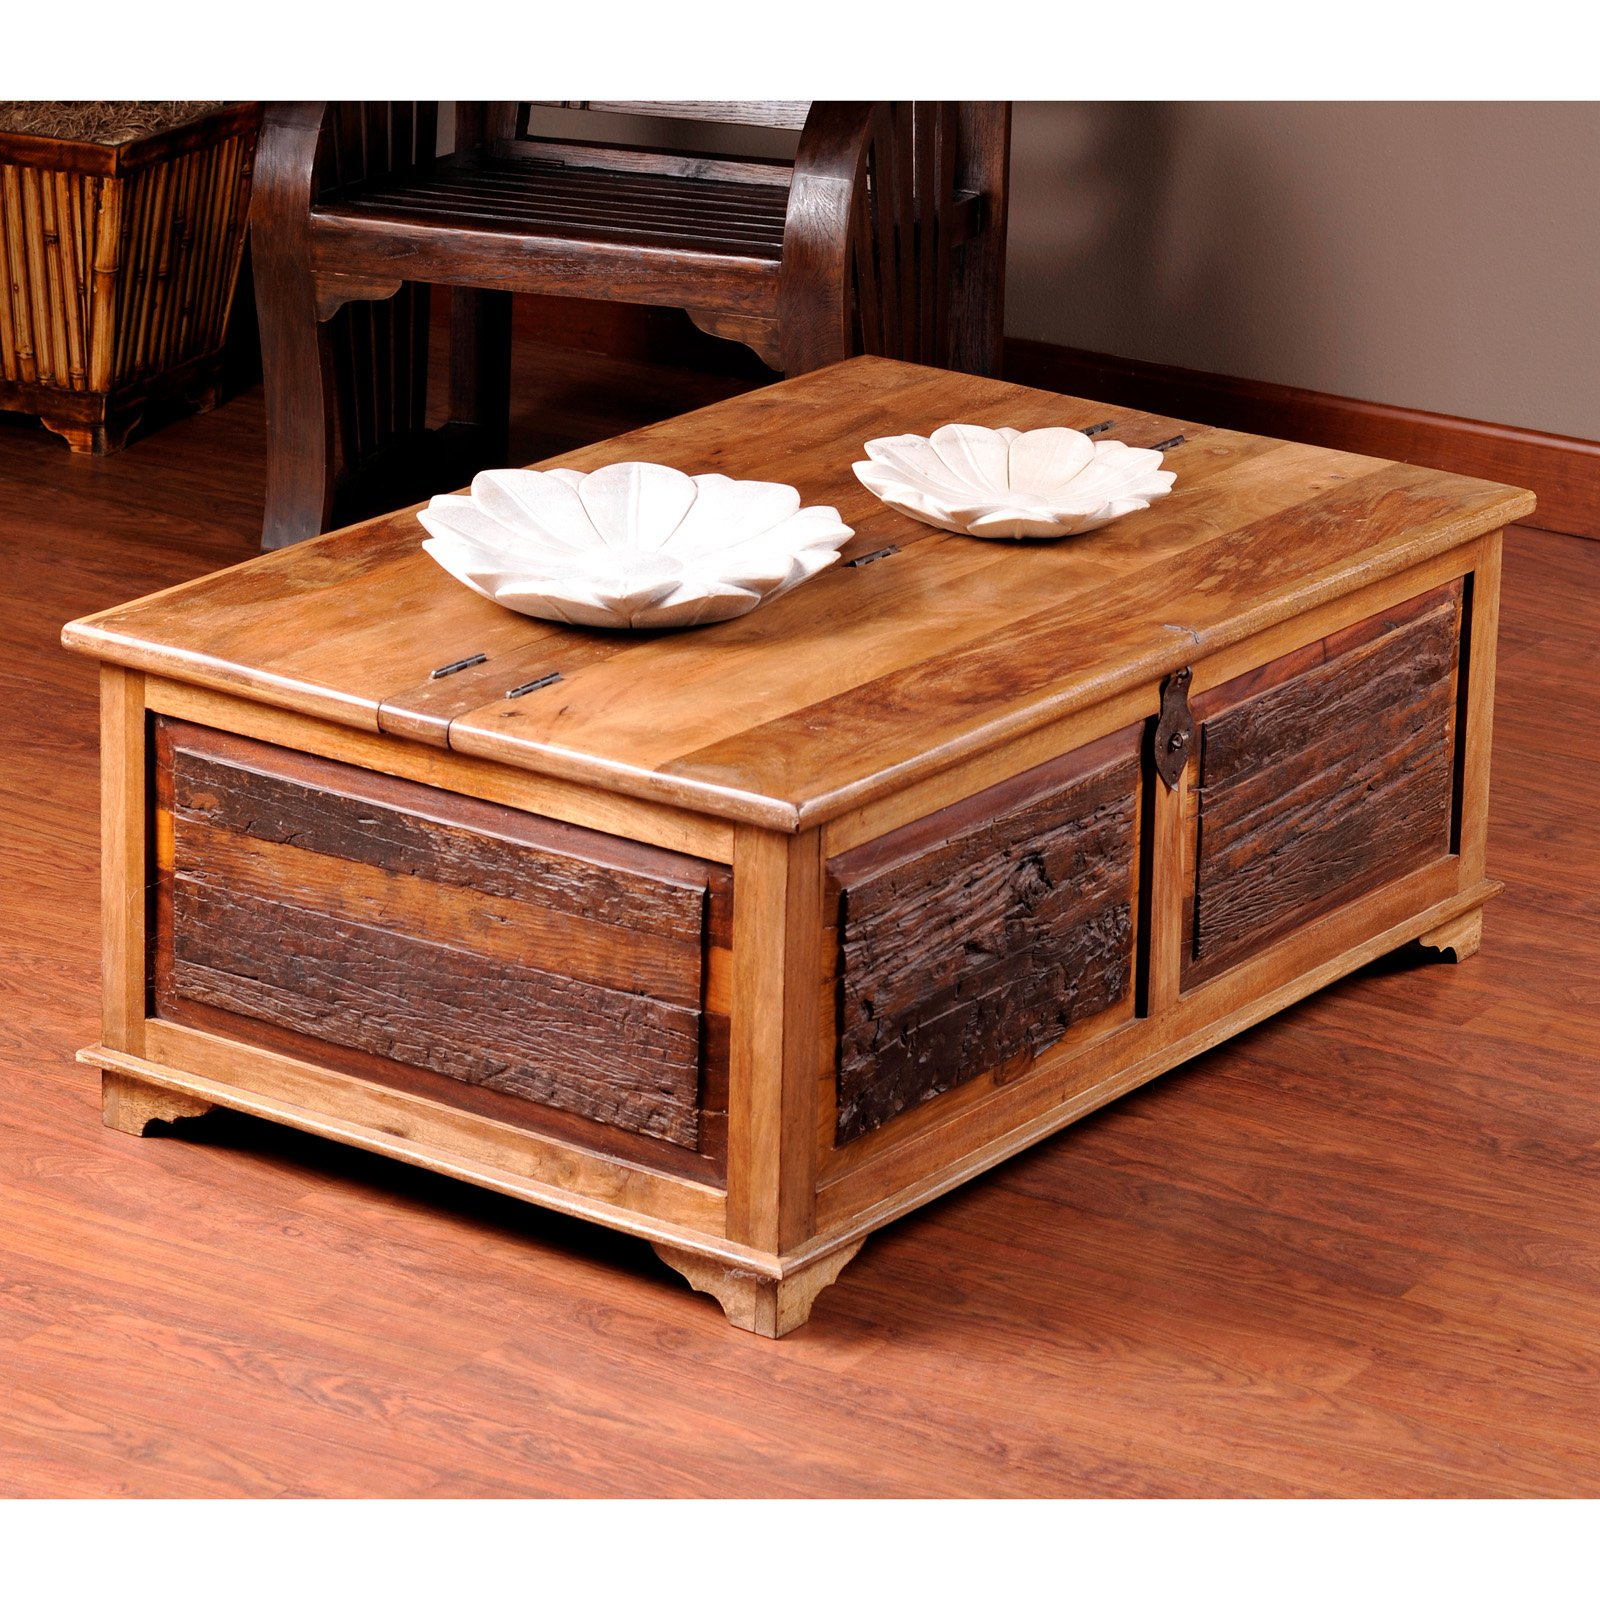 William Sheppee Kerala Lift-Top Coffee Table by Overstock